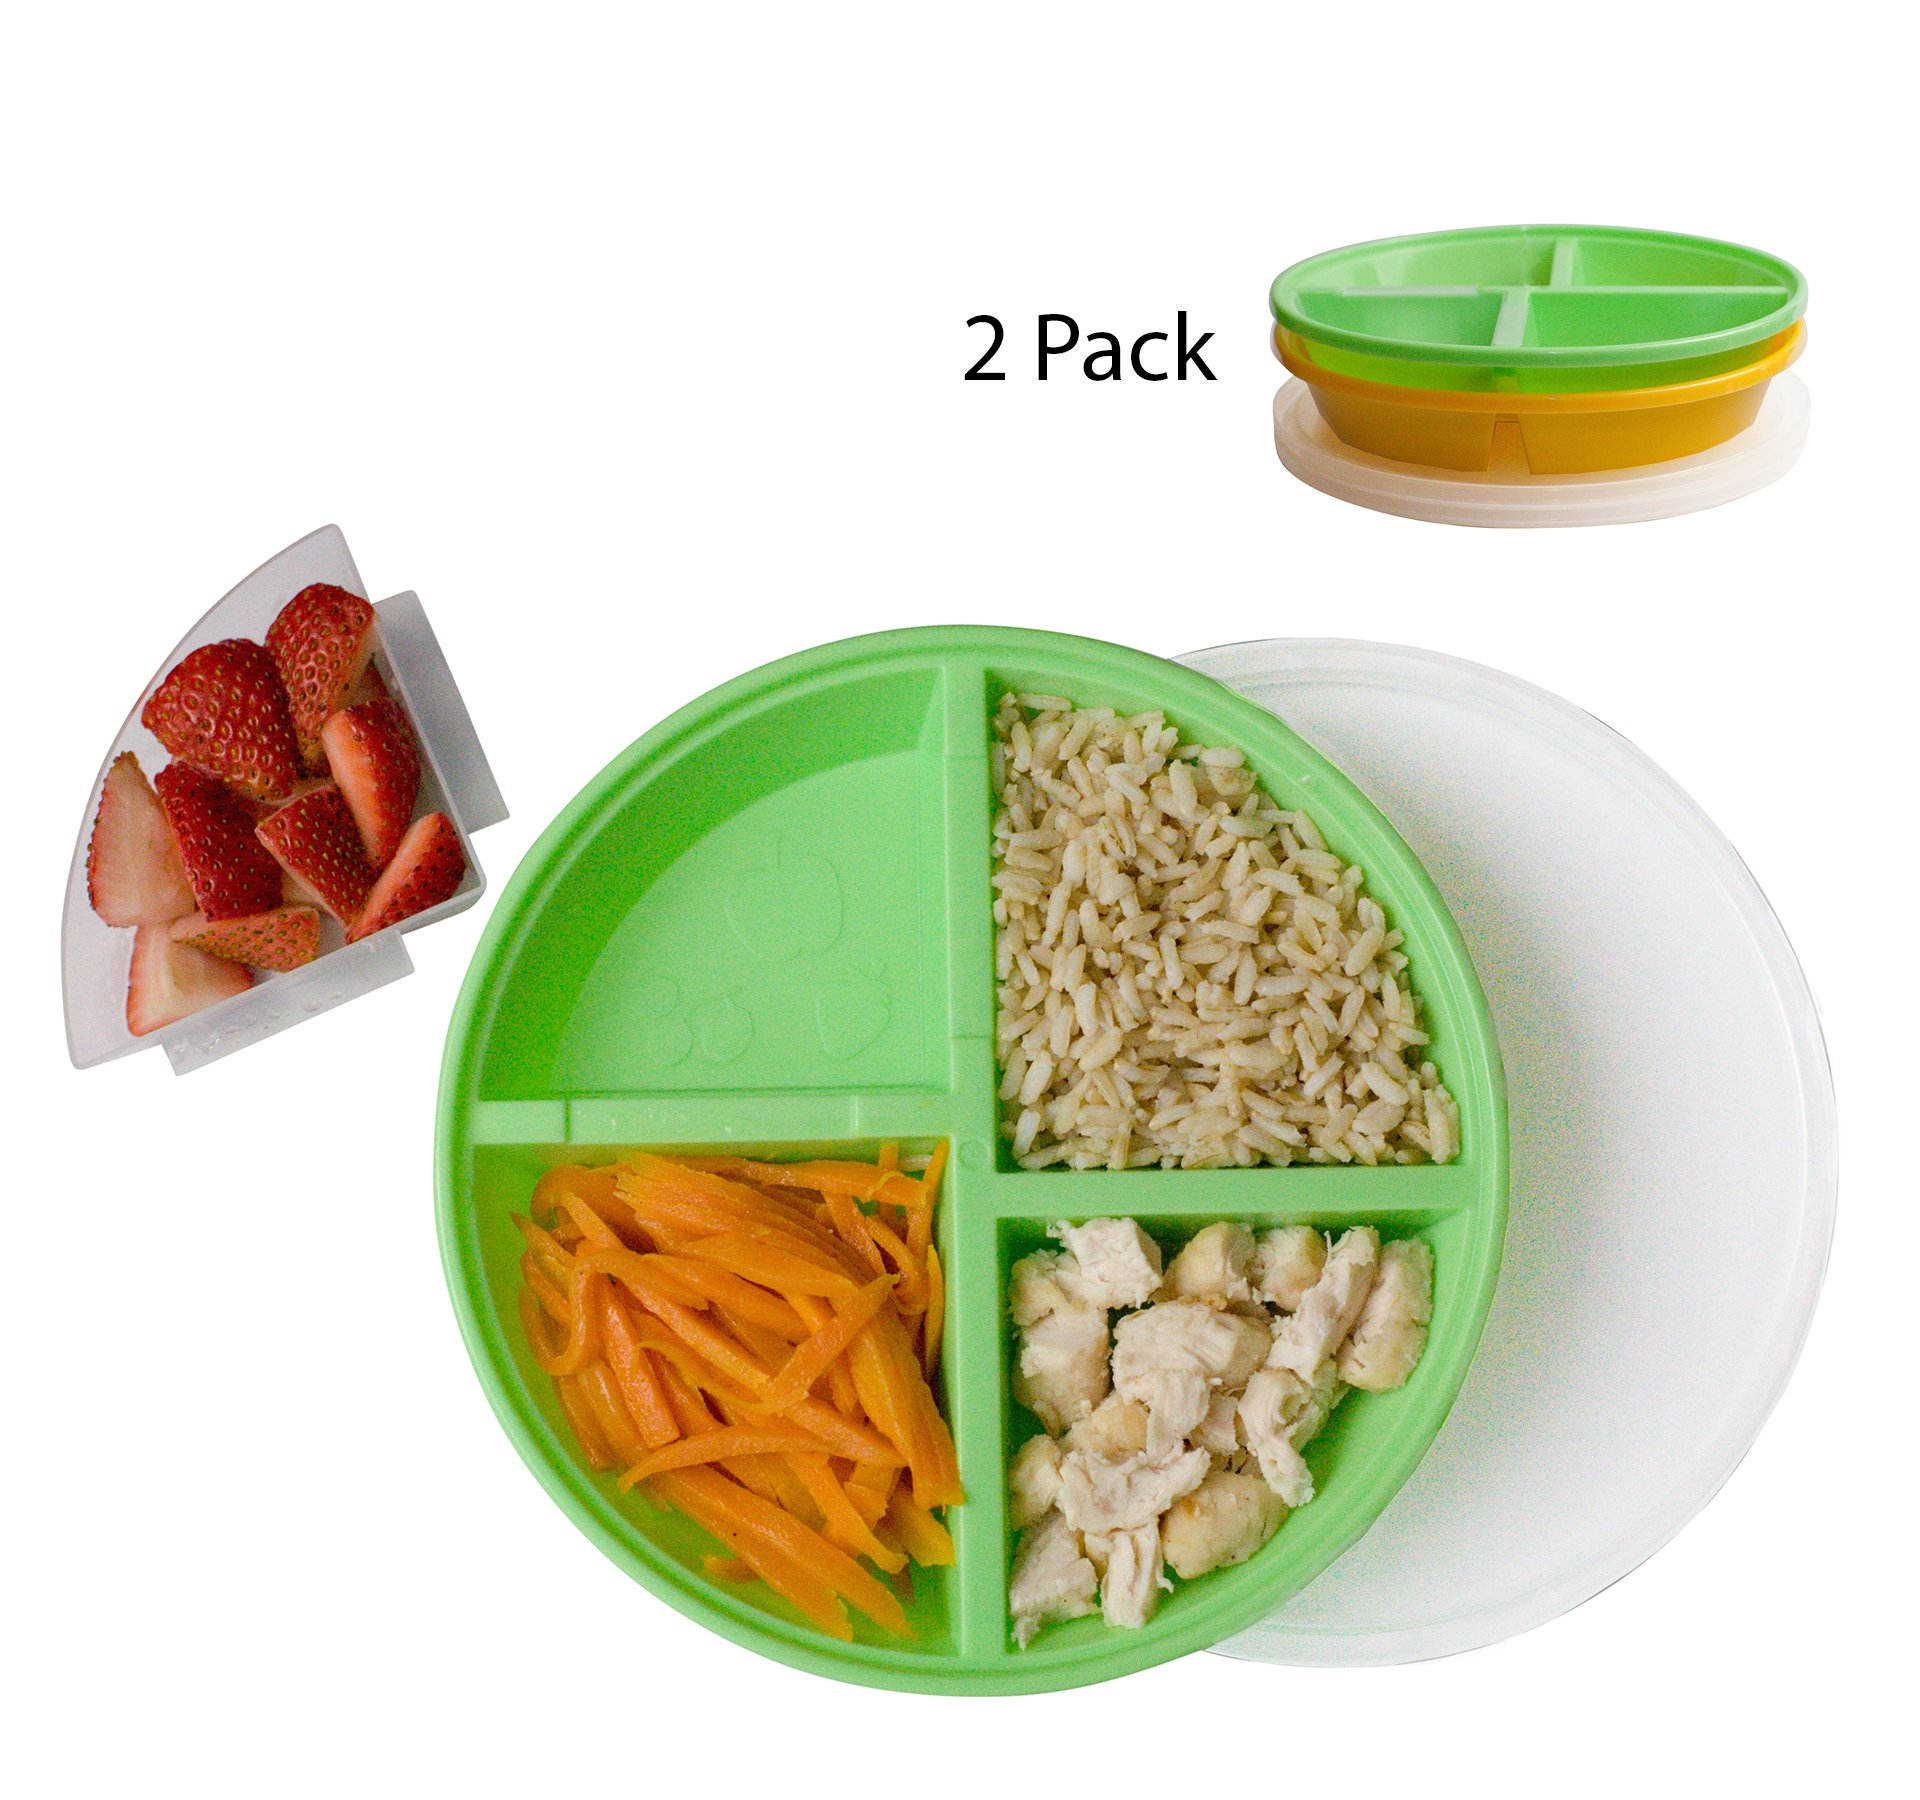 Nalaire Toddler Divided Plate with Lid - 2 Pack